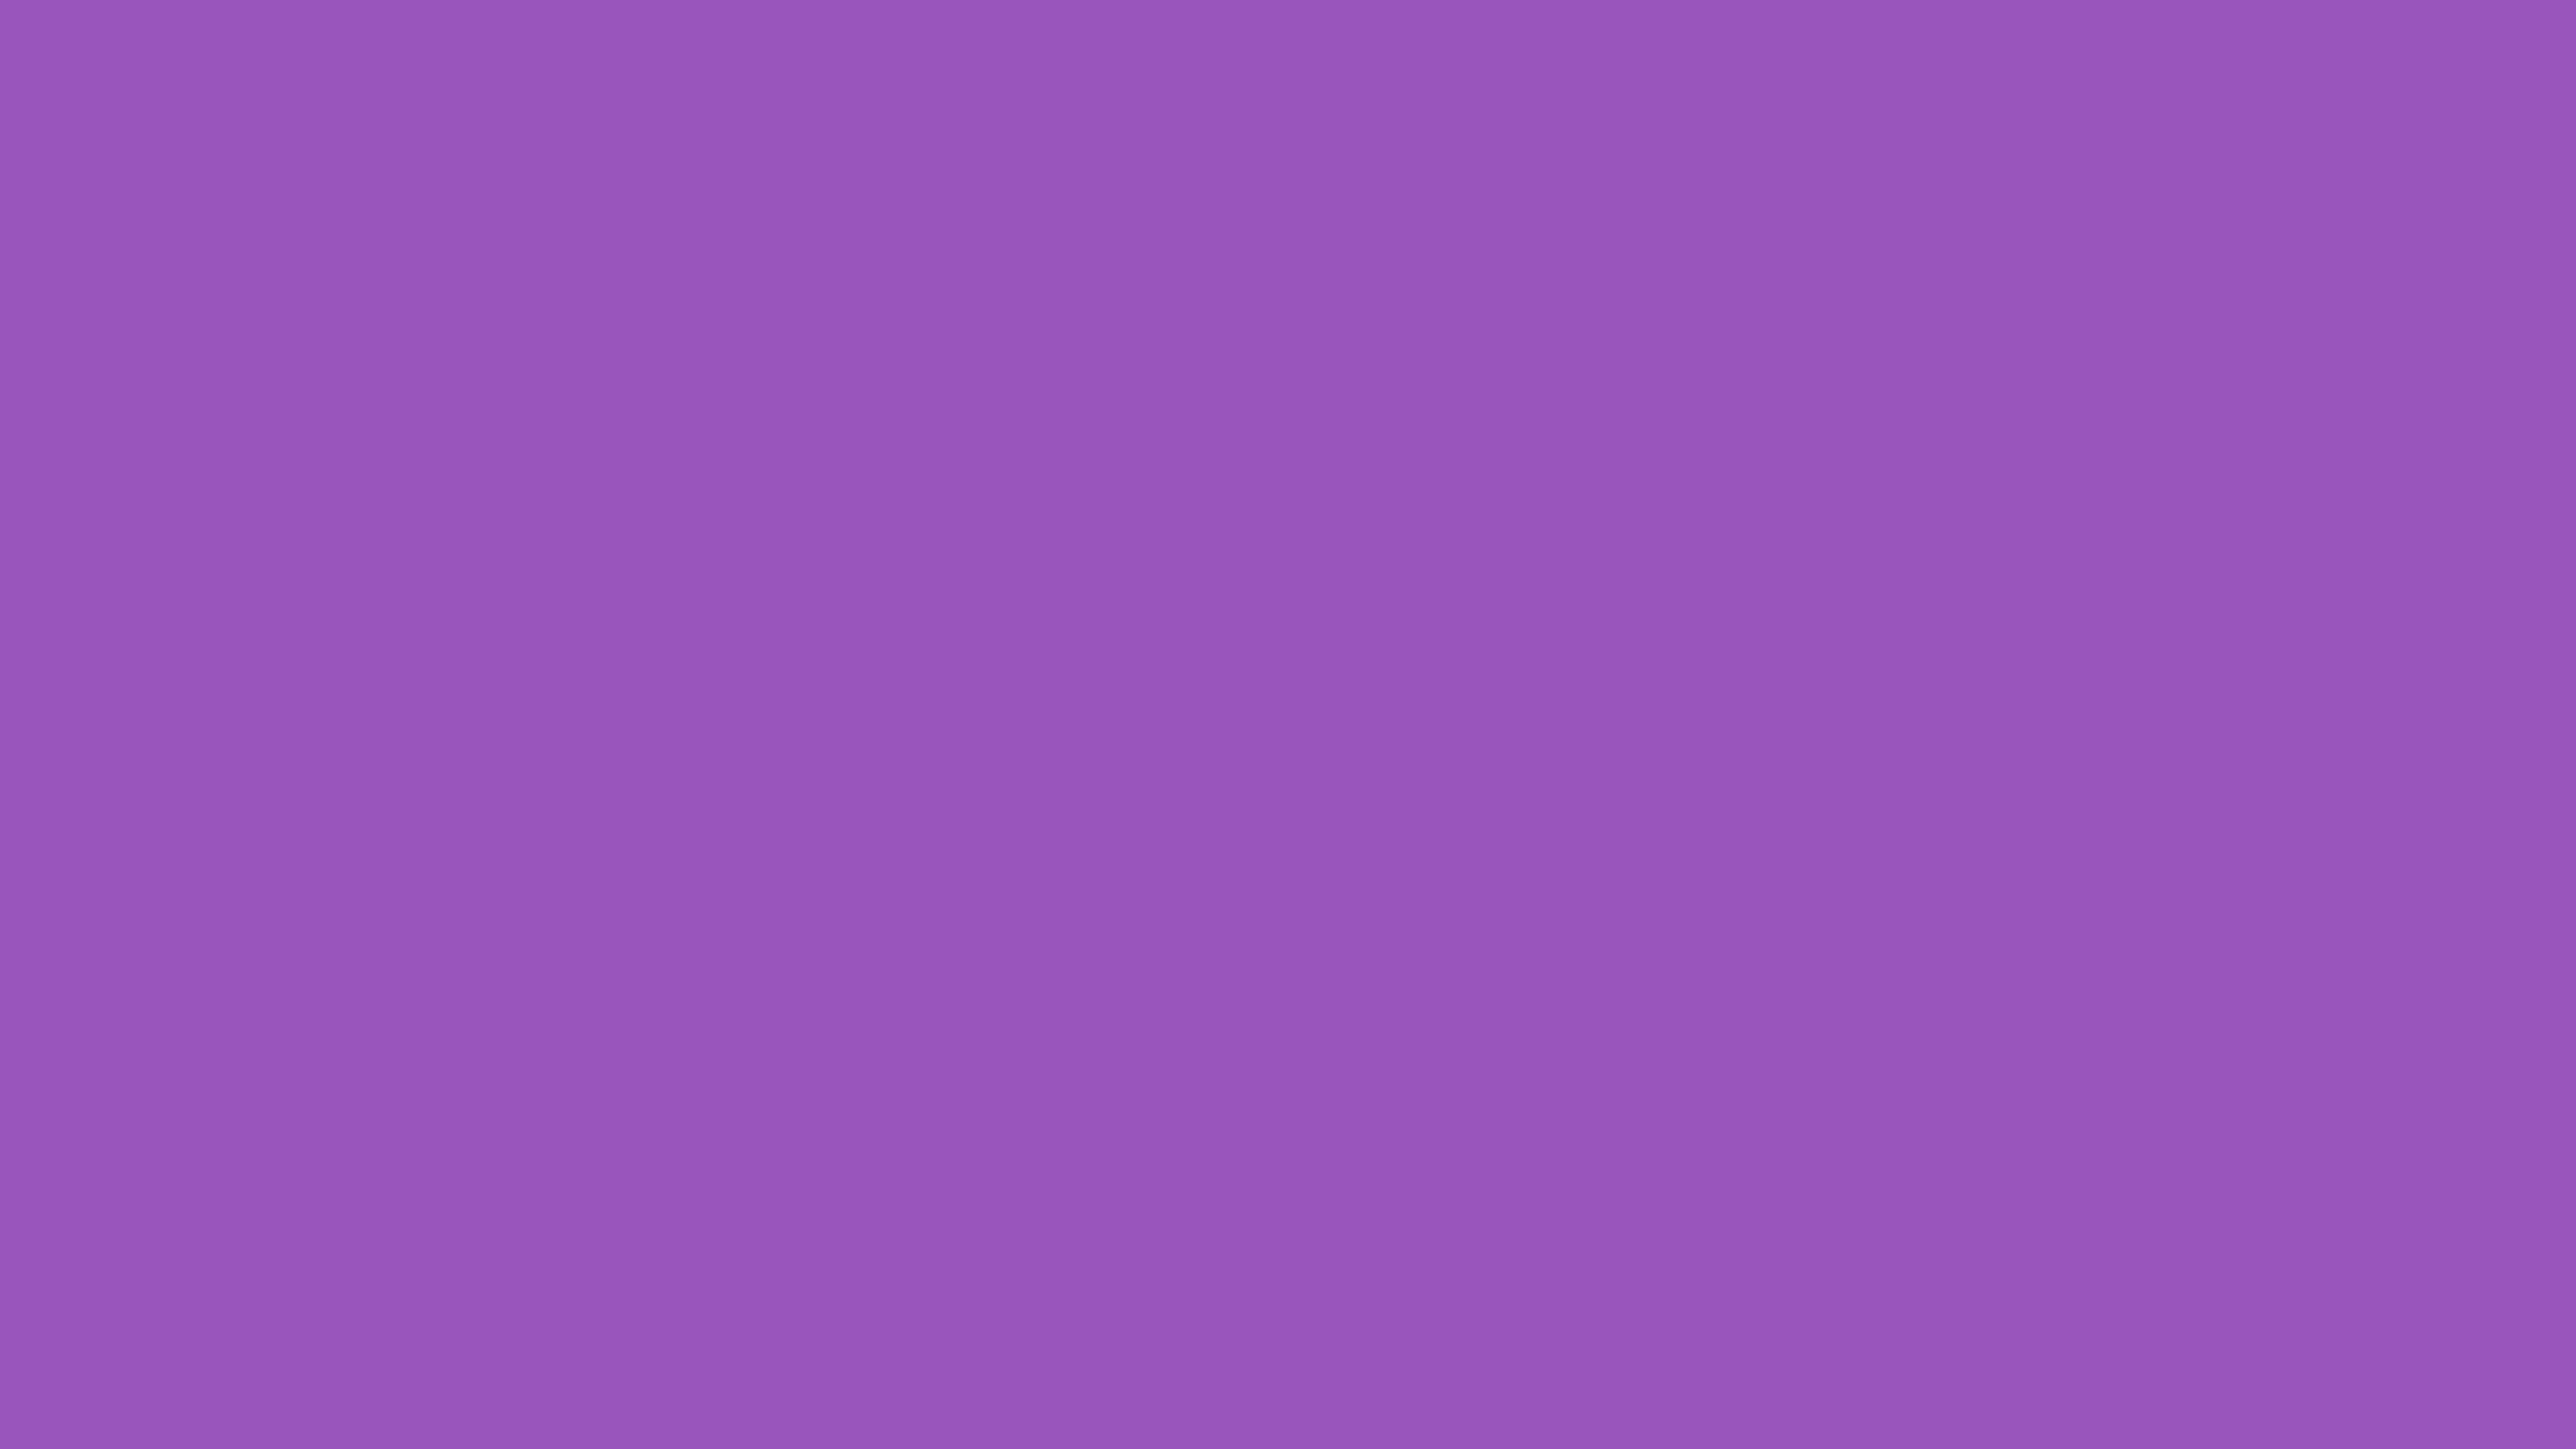 7680x4320 Deep Lilac Solid Color Background